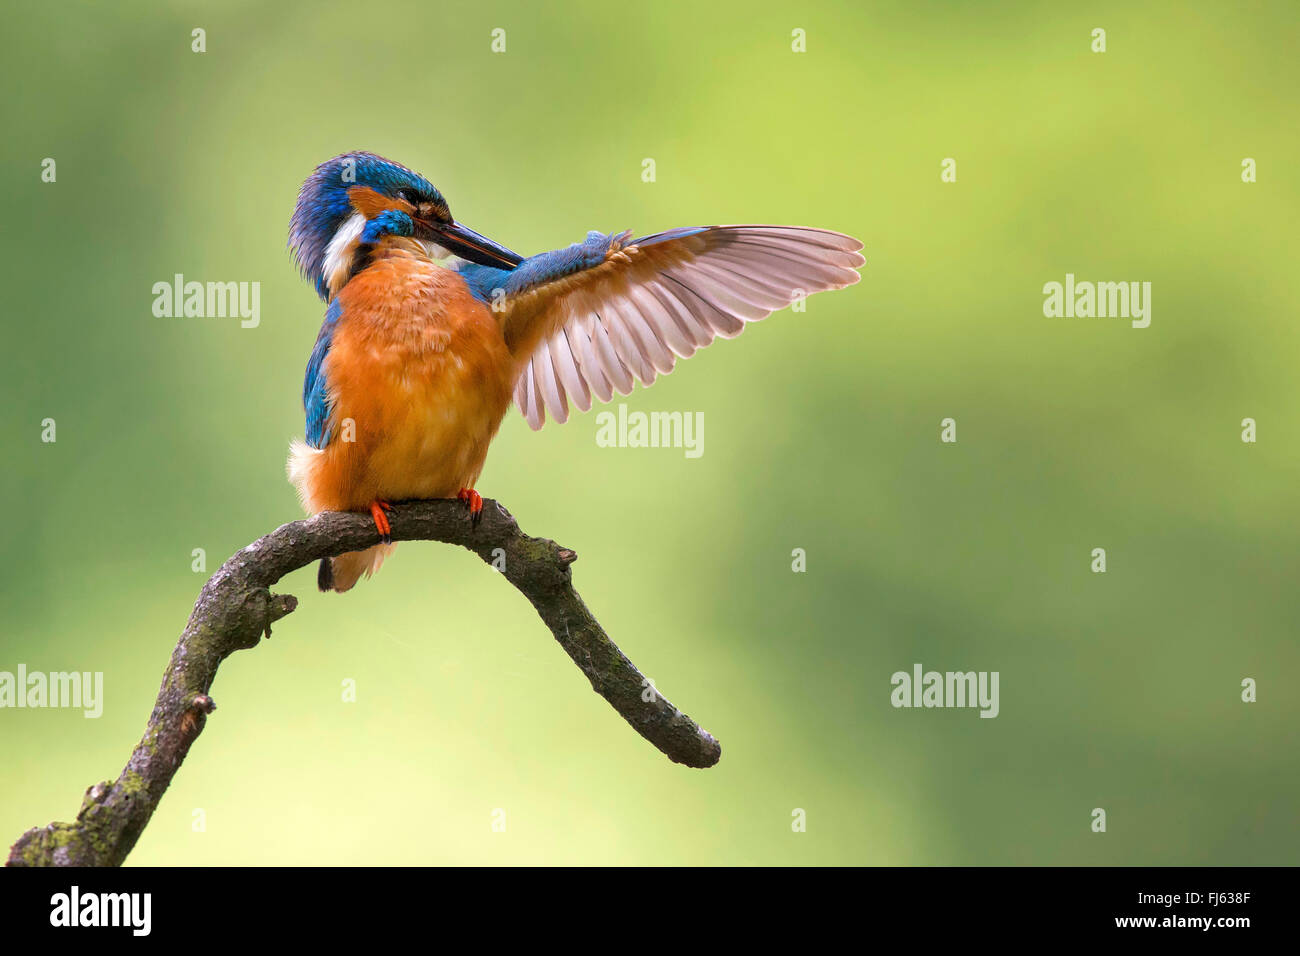 river kingfisher (Alcedo atthis), cares of its plumage, Germany, North Rhine-Westphalia - Stock Image